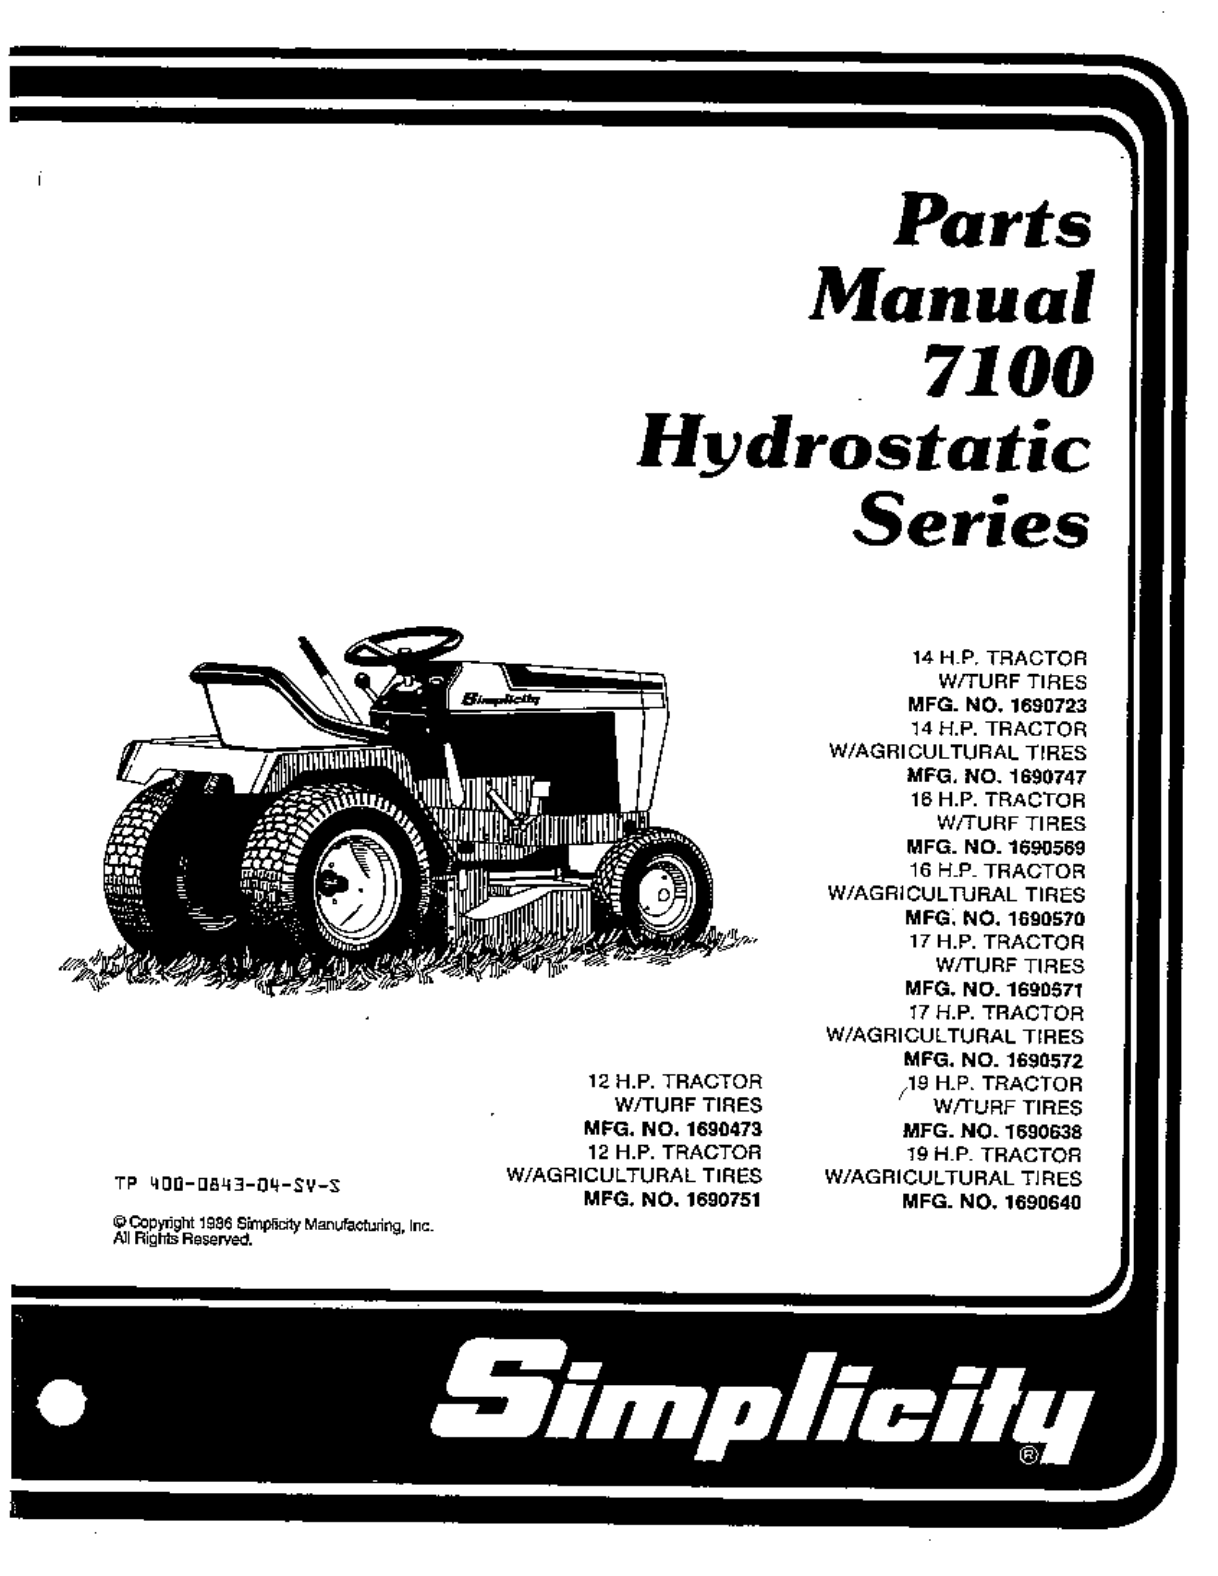 simplicity lawn mower 7100 hydrostatic series user guide manualsonline